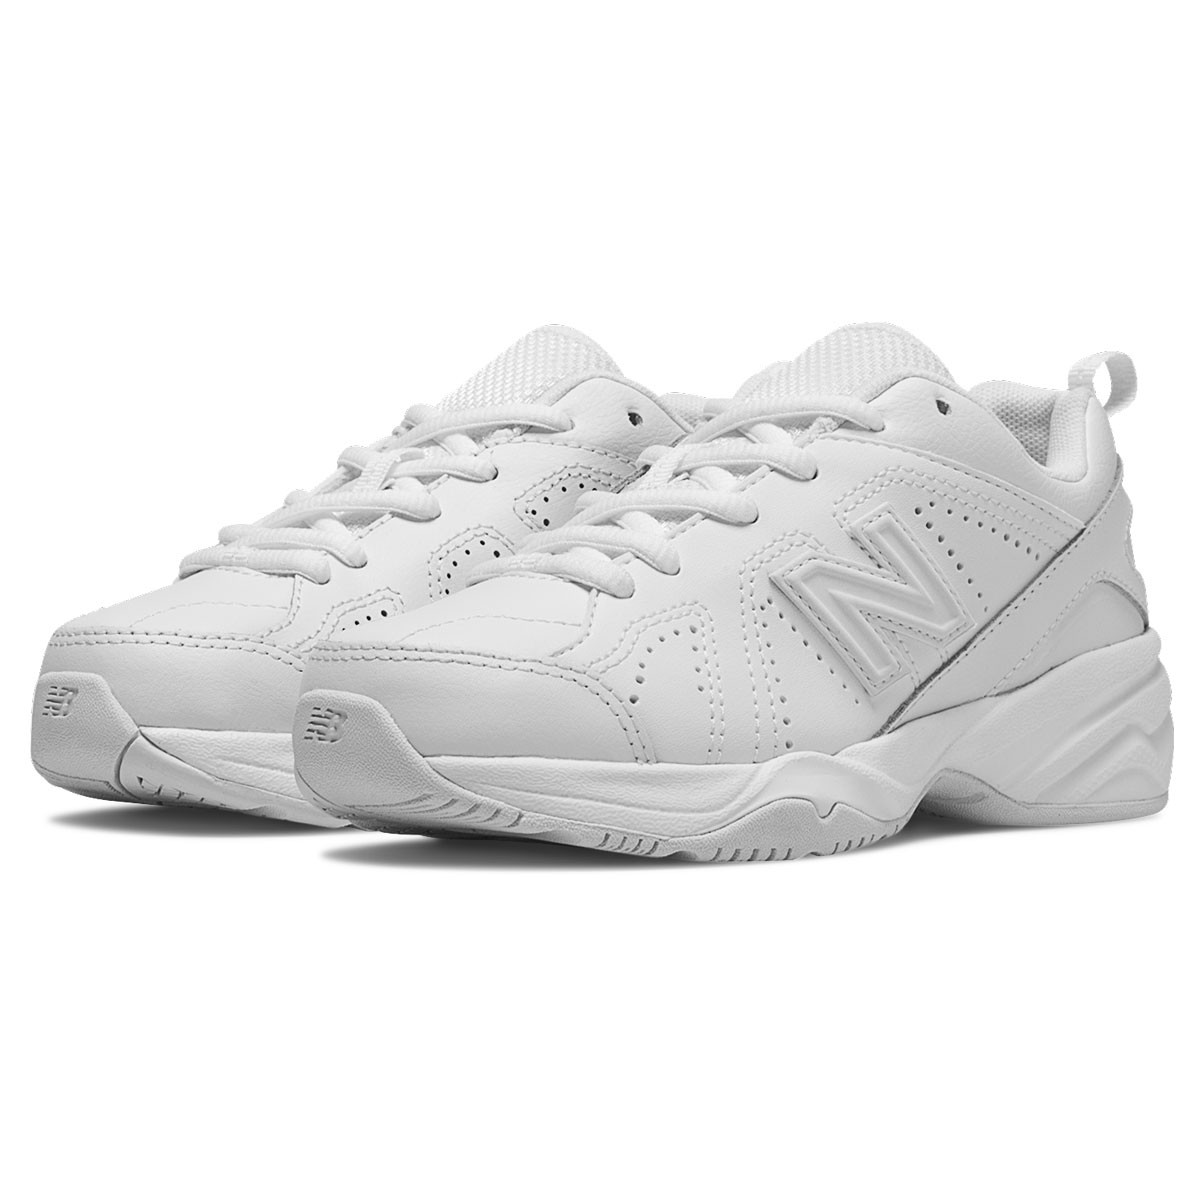 de3a15bc52 Details about Kids New Balance Boys KX624v2 Leather Low Top Lace Up, White,  Size 11 Wide youth